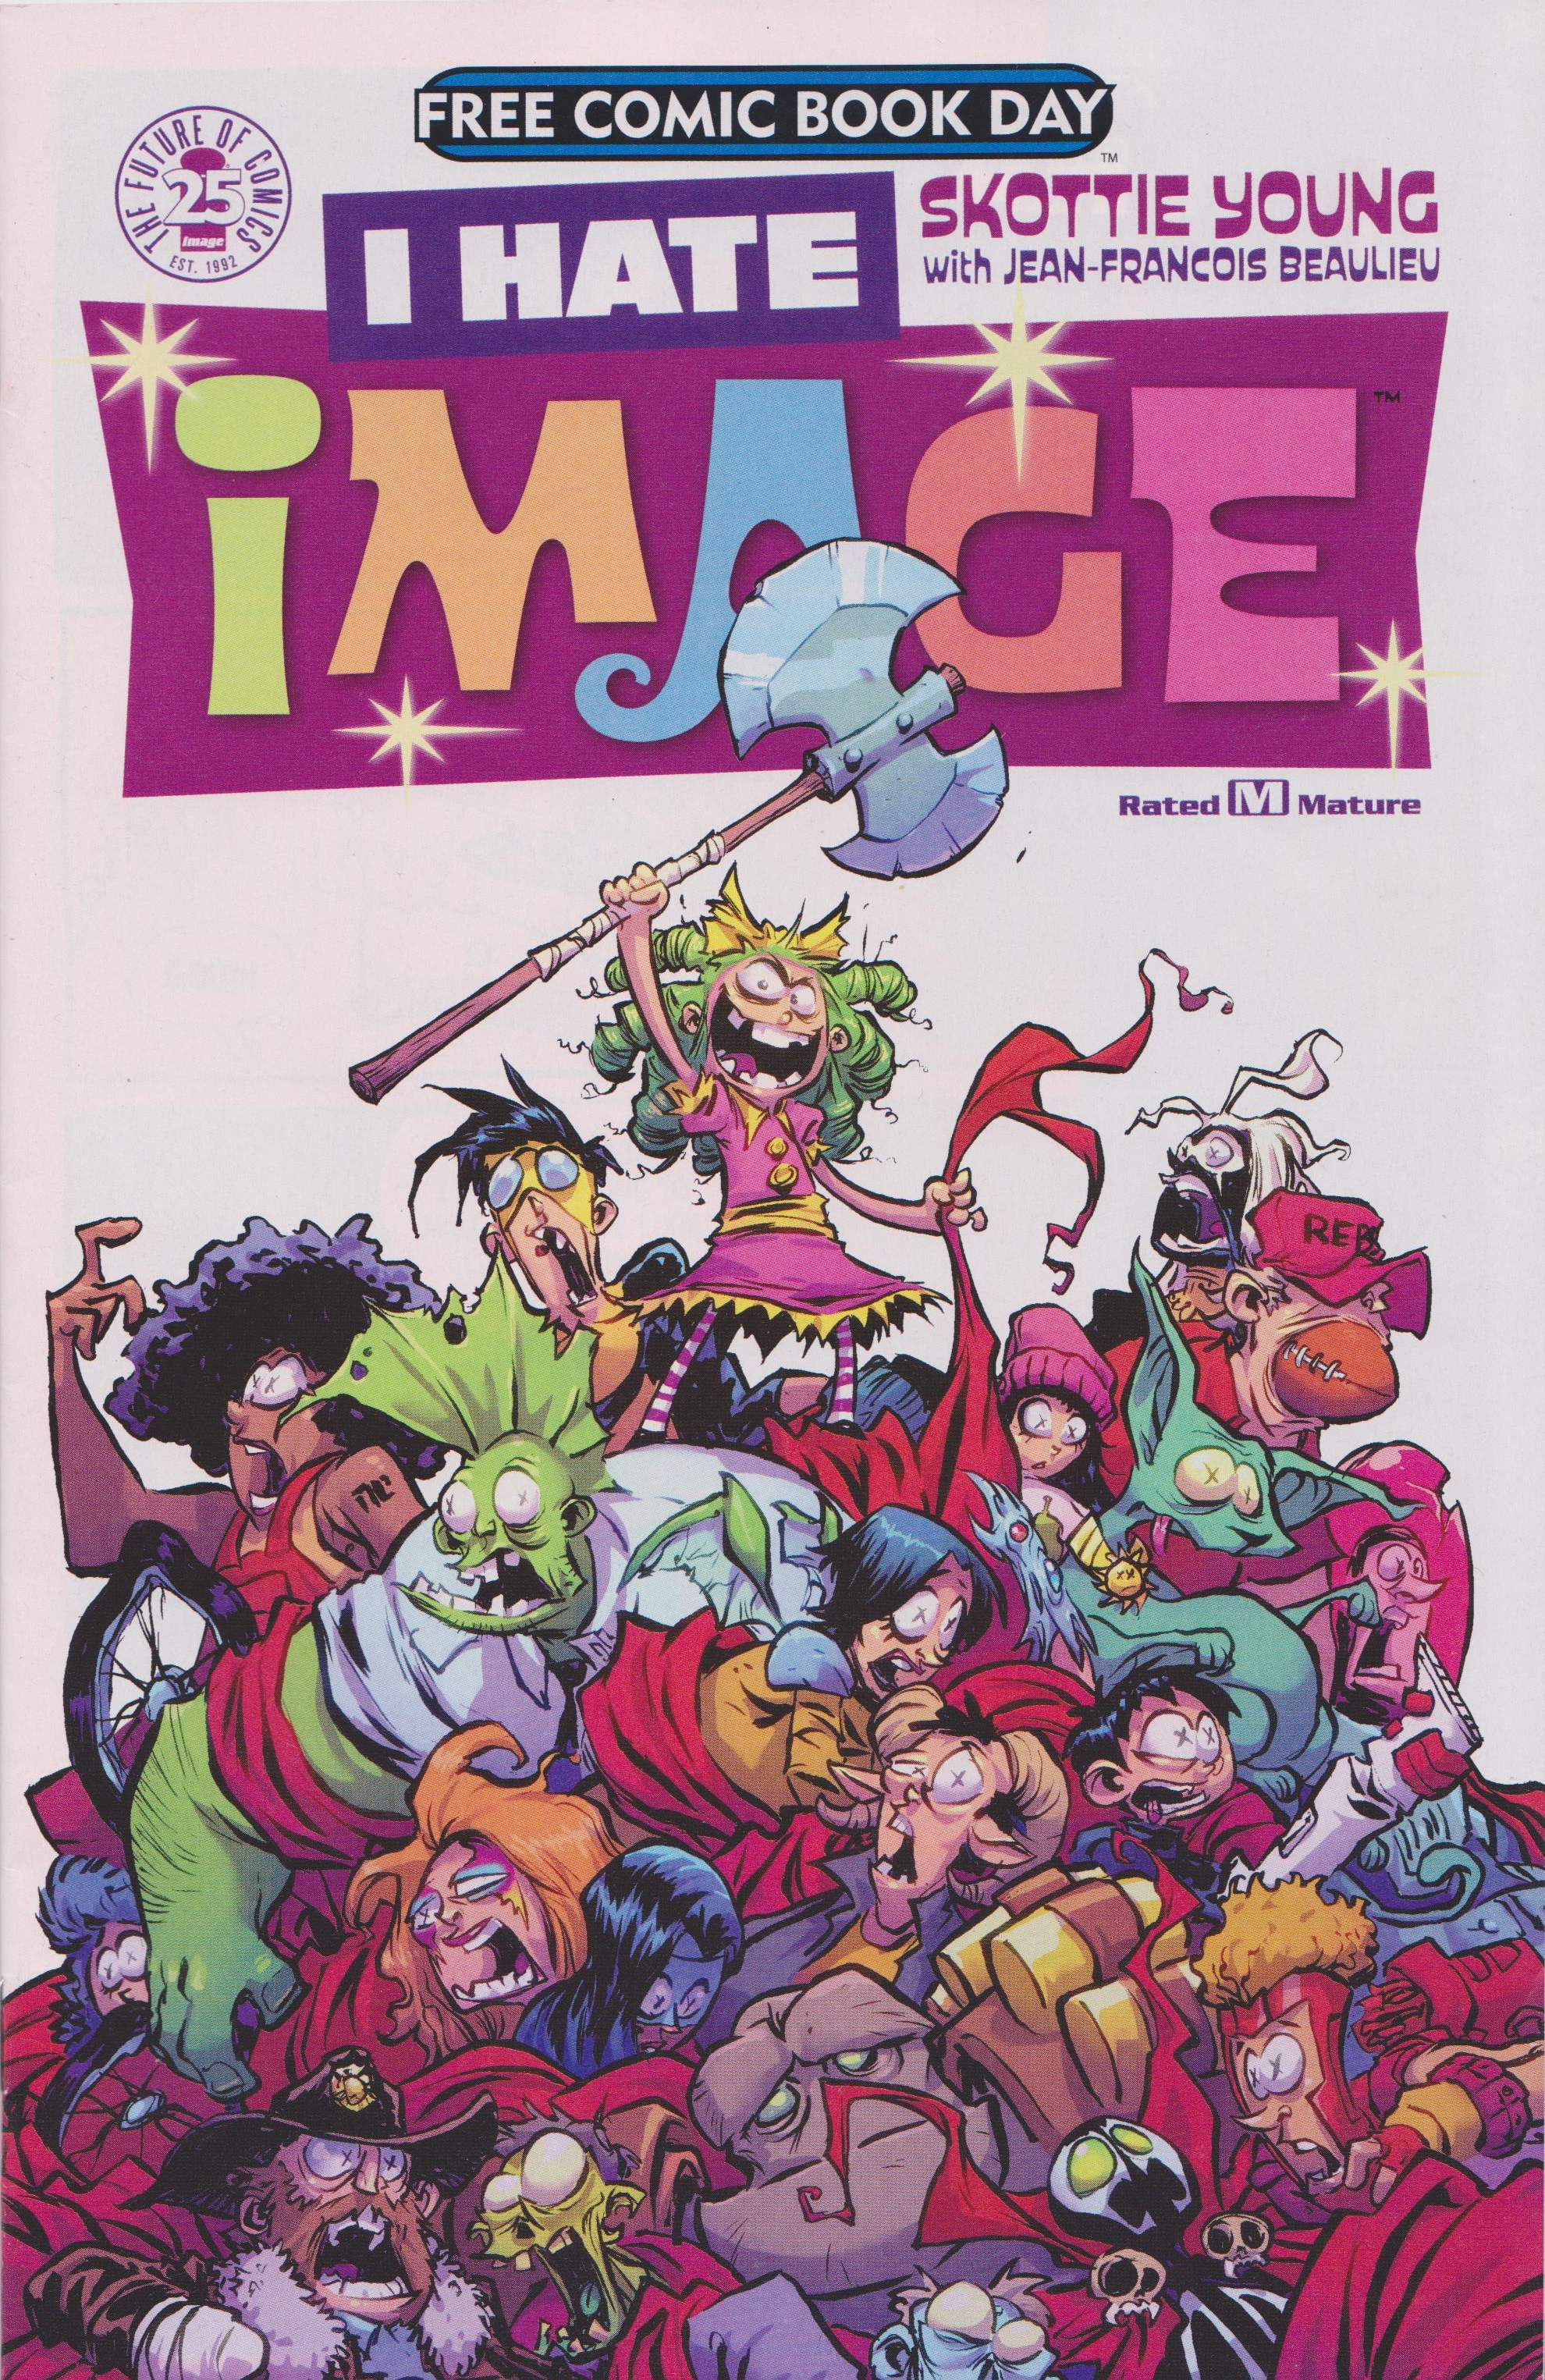 Read online Free Comic Book Day 2017 comic -  Issue # I Hate Image - 1